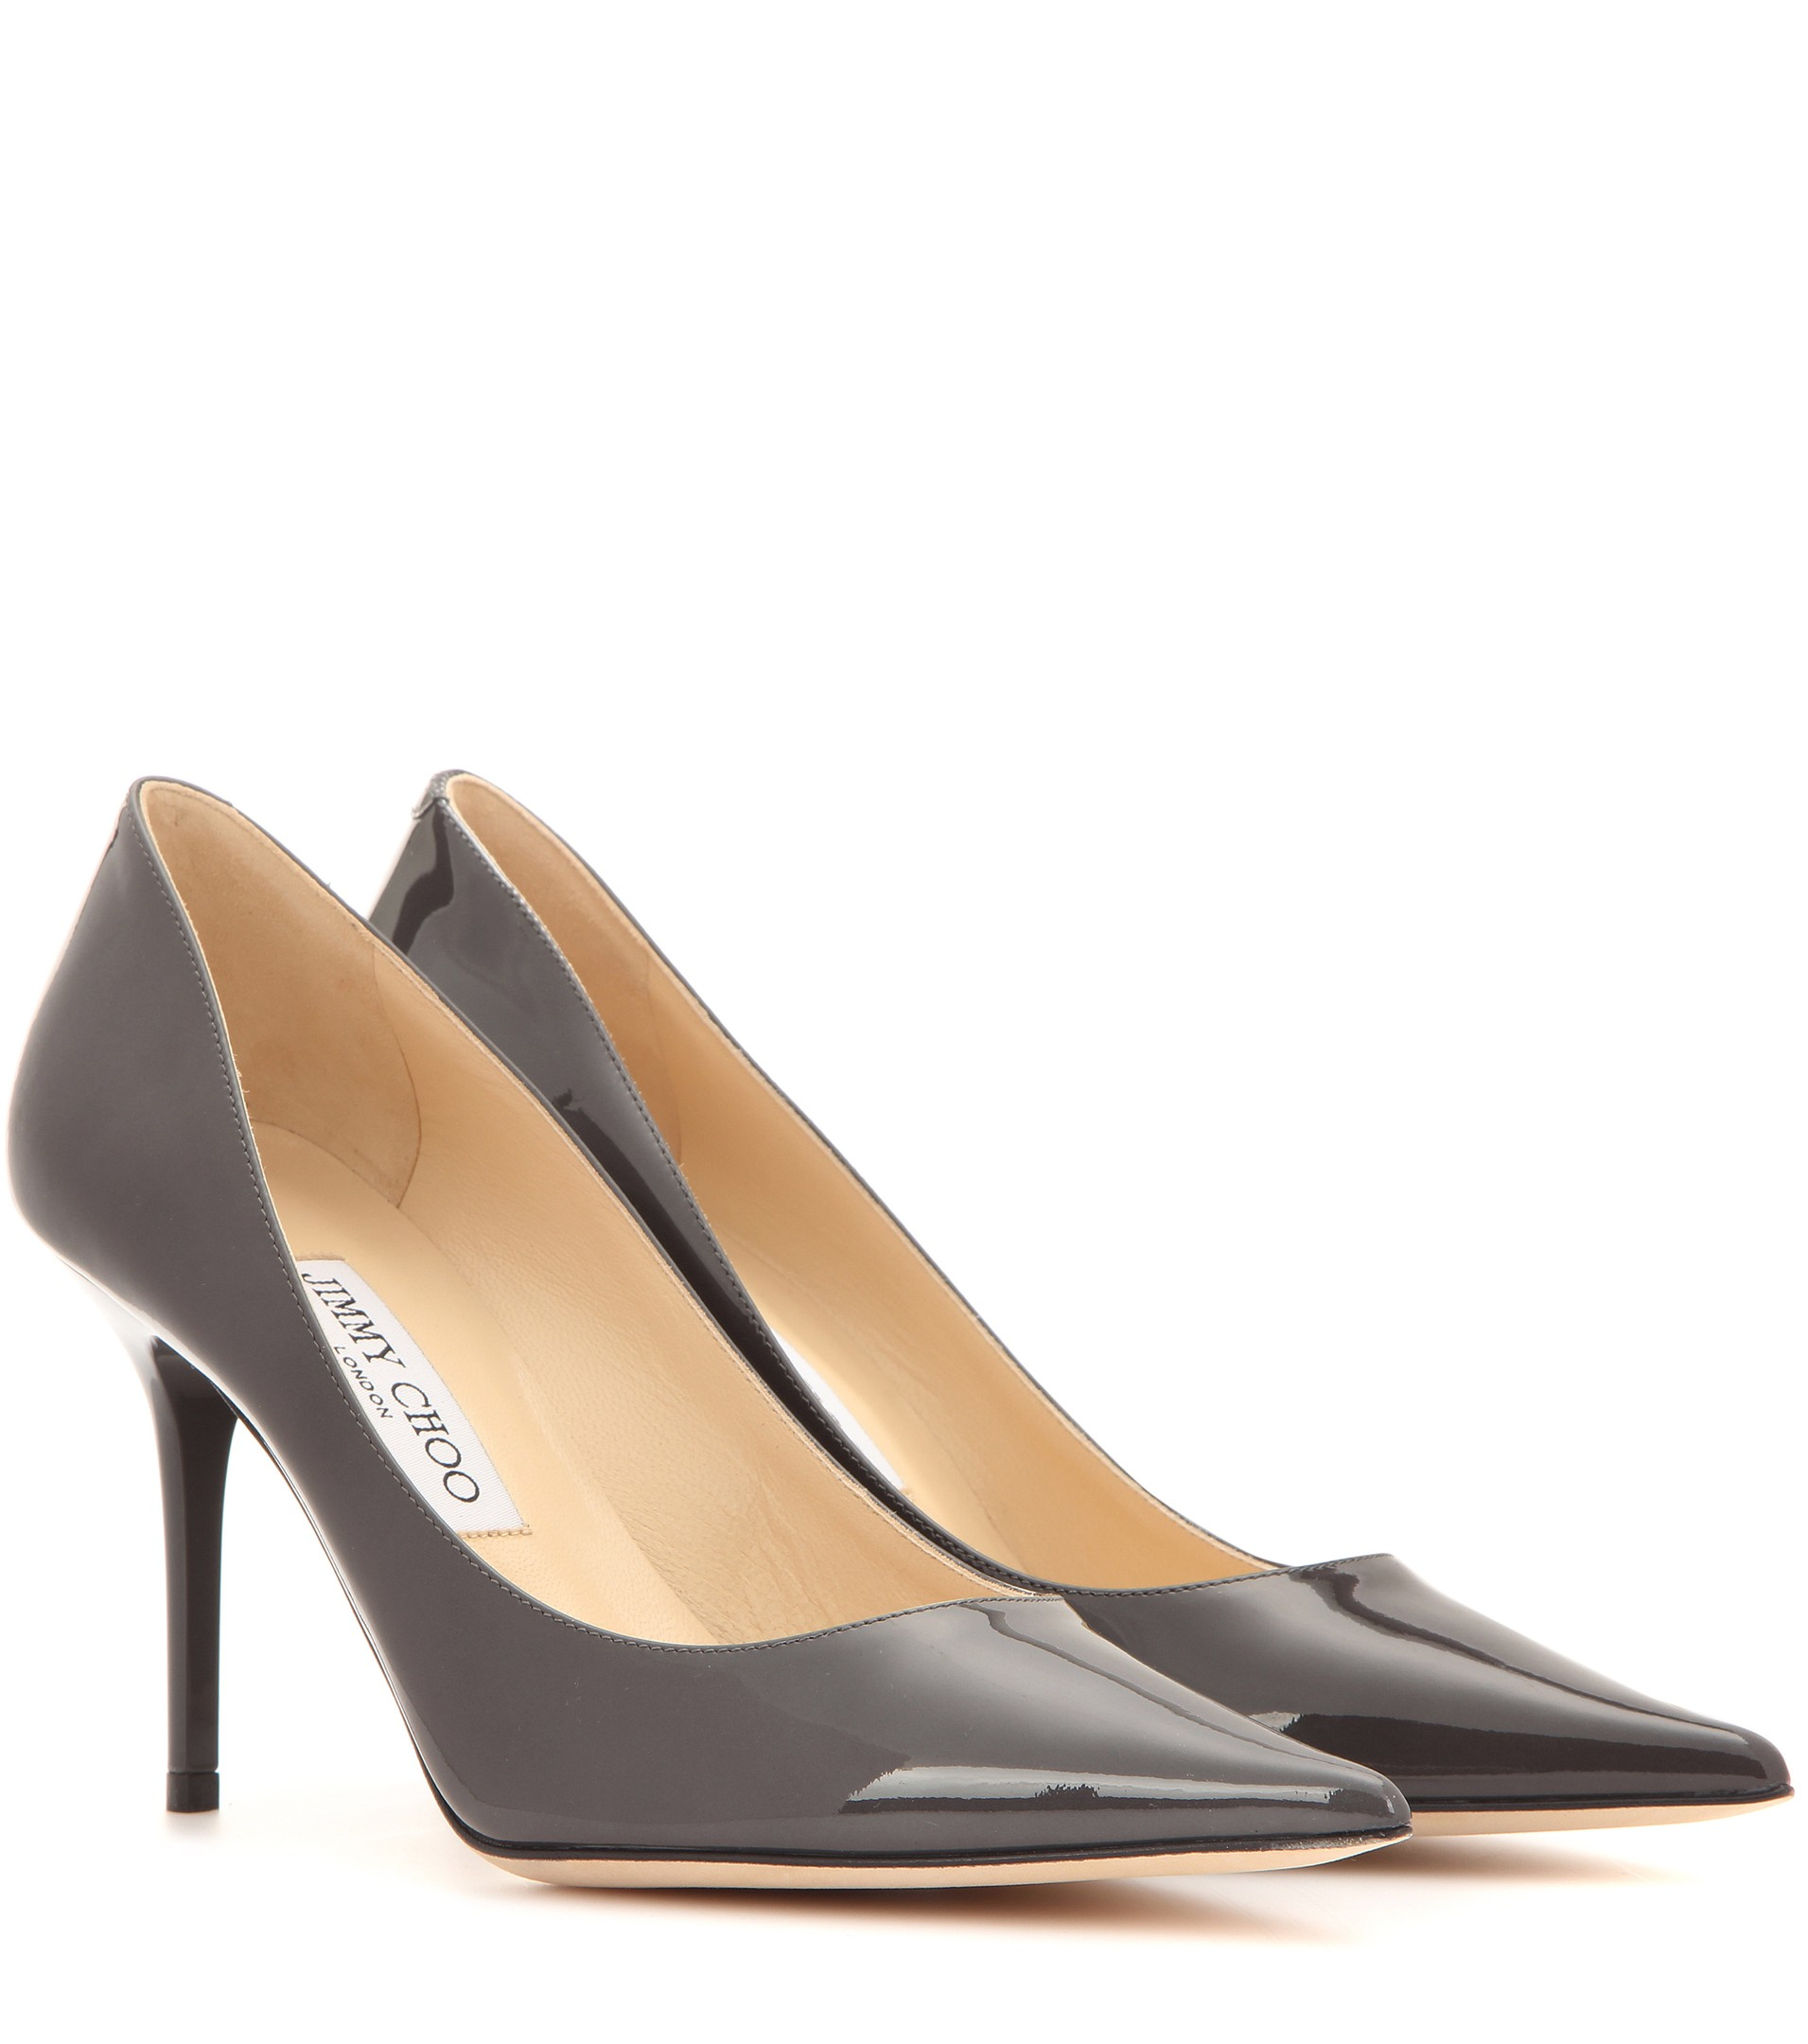 6db079bb95b4 Lyst - Jimmy Choo Agnes Patent Leather Pumps in Gray